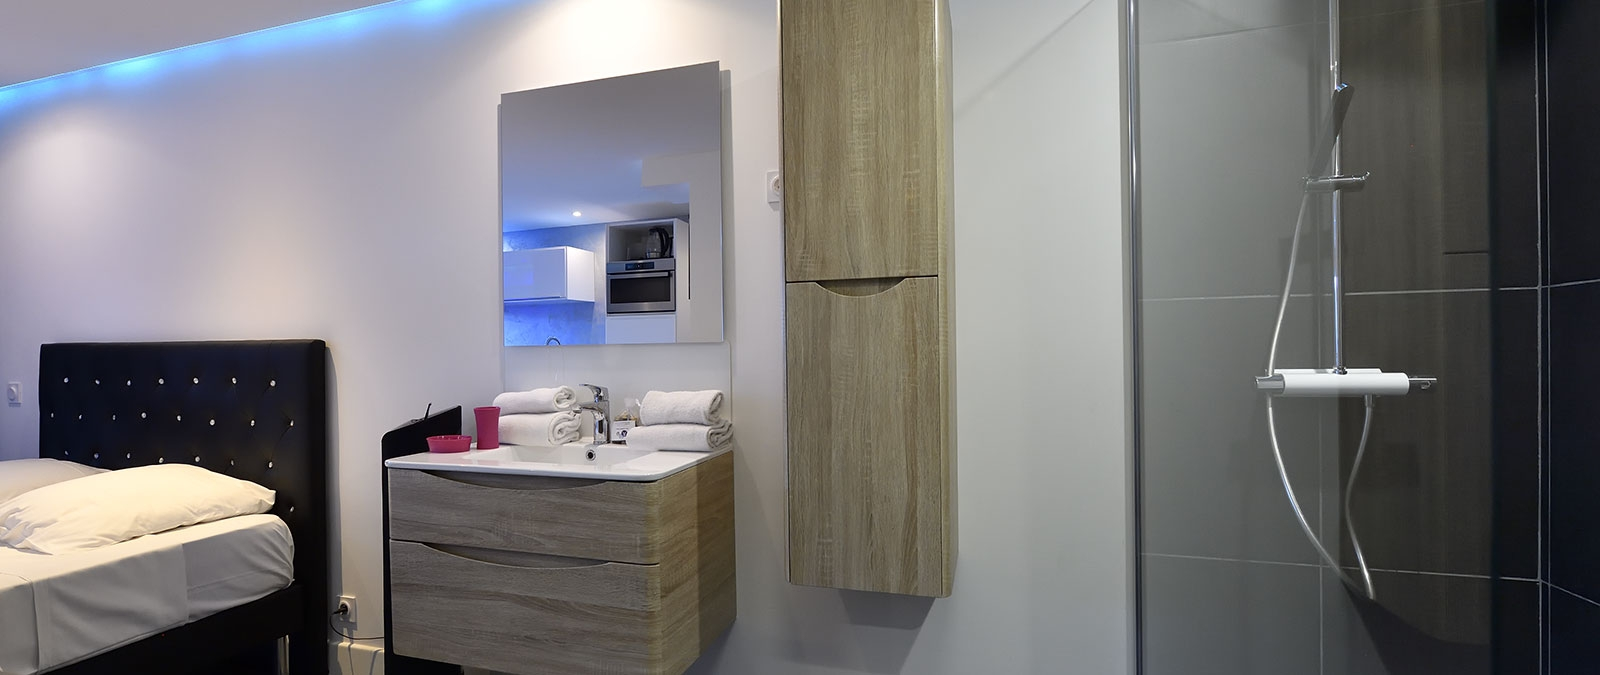 Shower area Blue Night libertine studio flat for rent